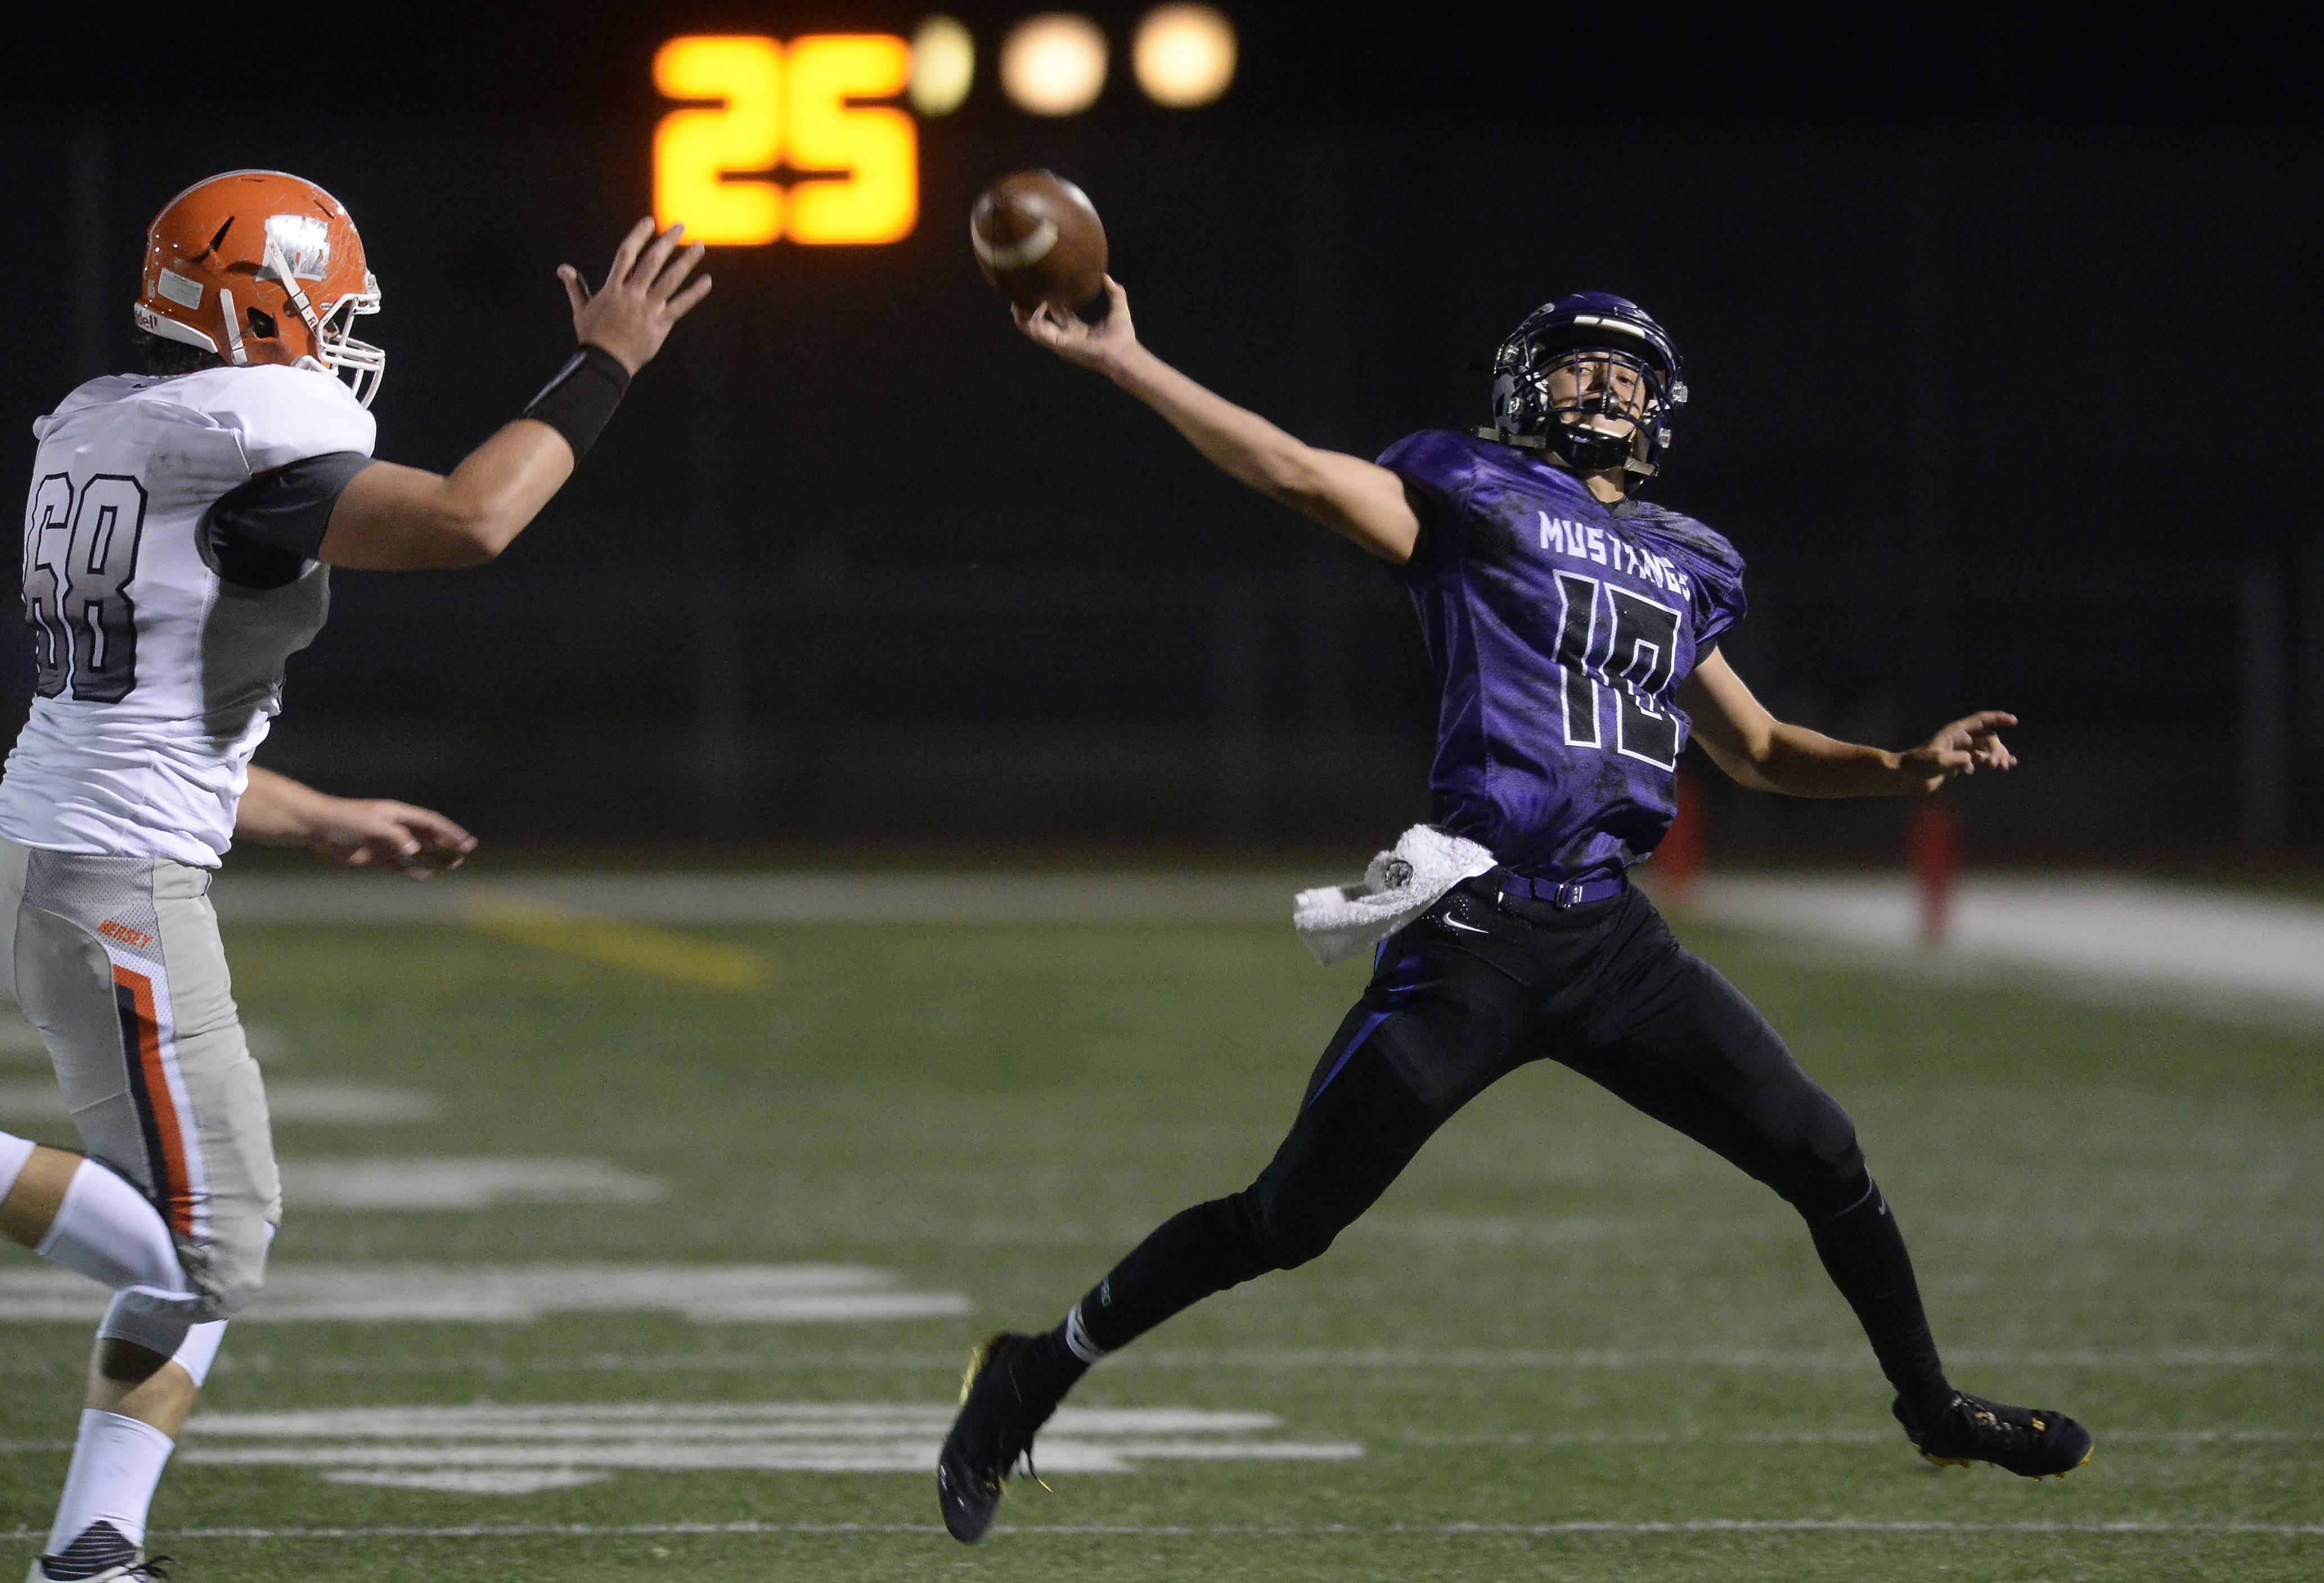 Rolling Meadows quarterback Arek Kleniuk delivers a pass under duress in the first half against Hersey at Rolling Meadows on Friday.